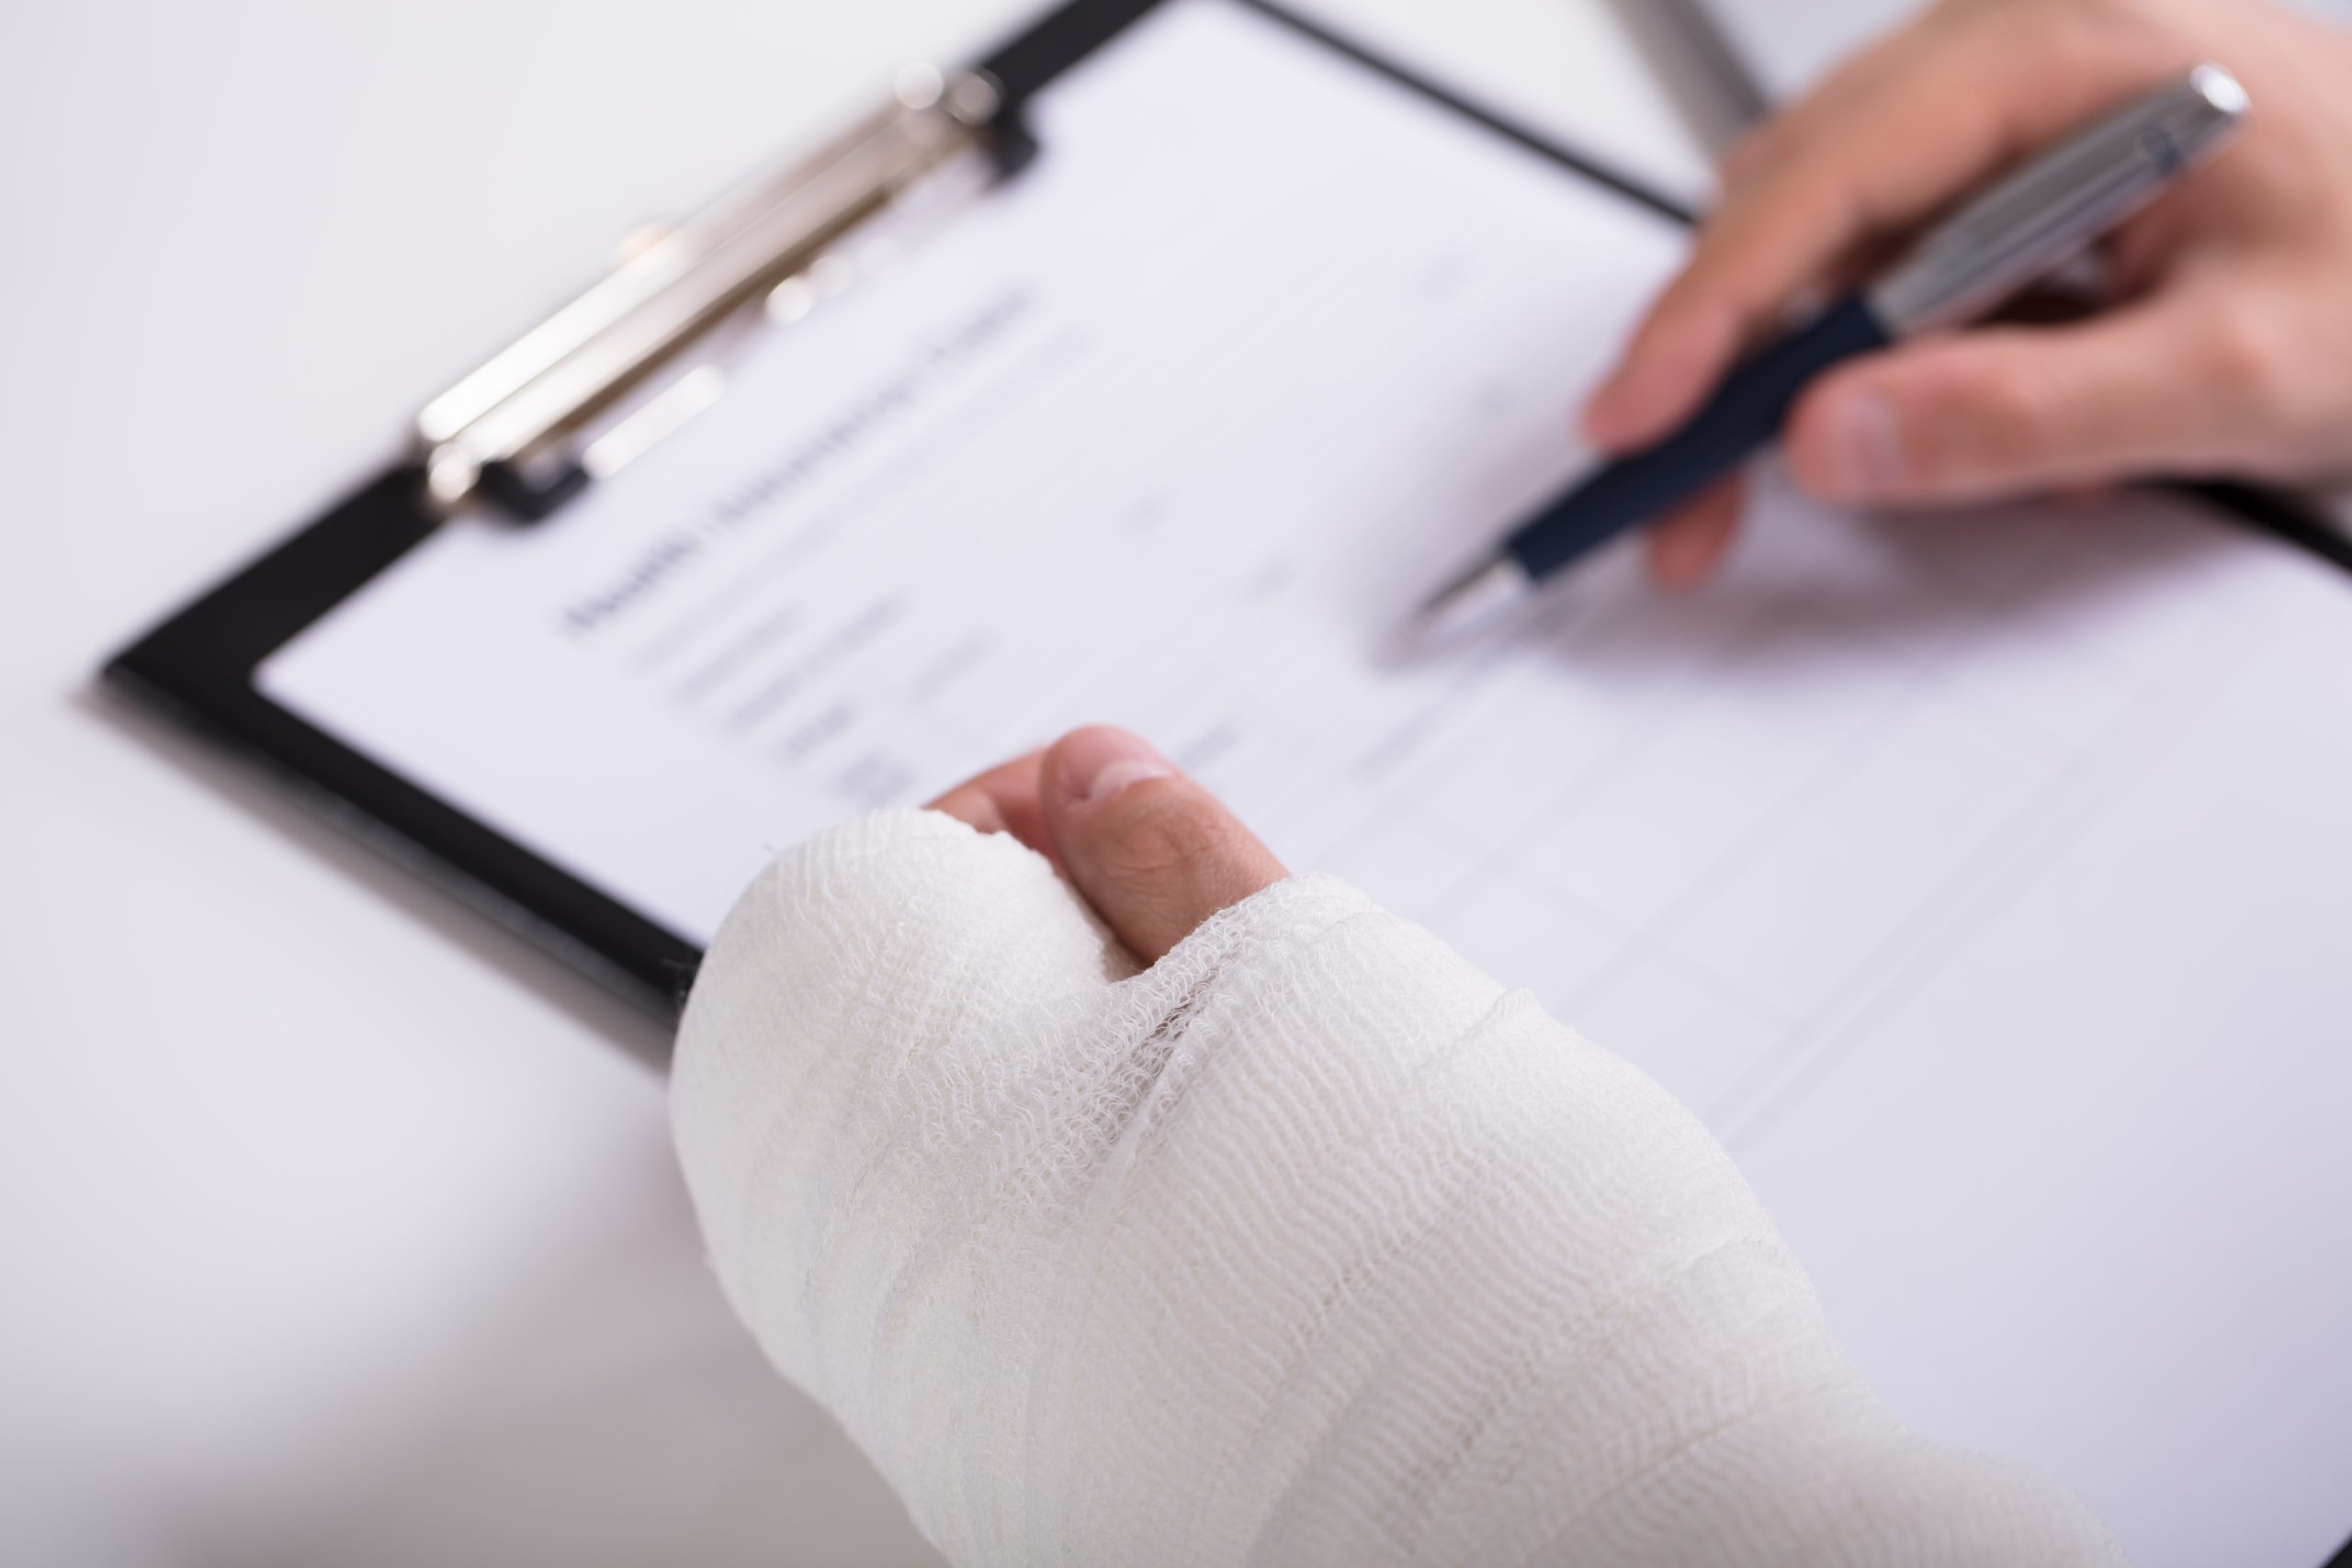 A broken left hand in a cast and a right hand filling out a form. This image is featured on the Passive Income MD blog in a partnership post with Pattern. Get your disability insurance through Pattern, especially if you're a physician. You can get started here: https://www.patternlife.com/quote/physician-disability-insurance-quote-request?uclickid=ebmti5e4b33a3821e8674872457&campid=481226&utm_source=&utm_medium=&utm_campaign=&utm_term=&utm_content=